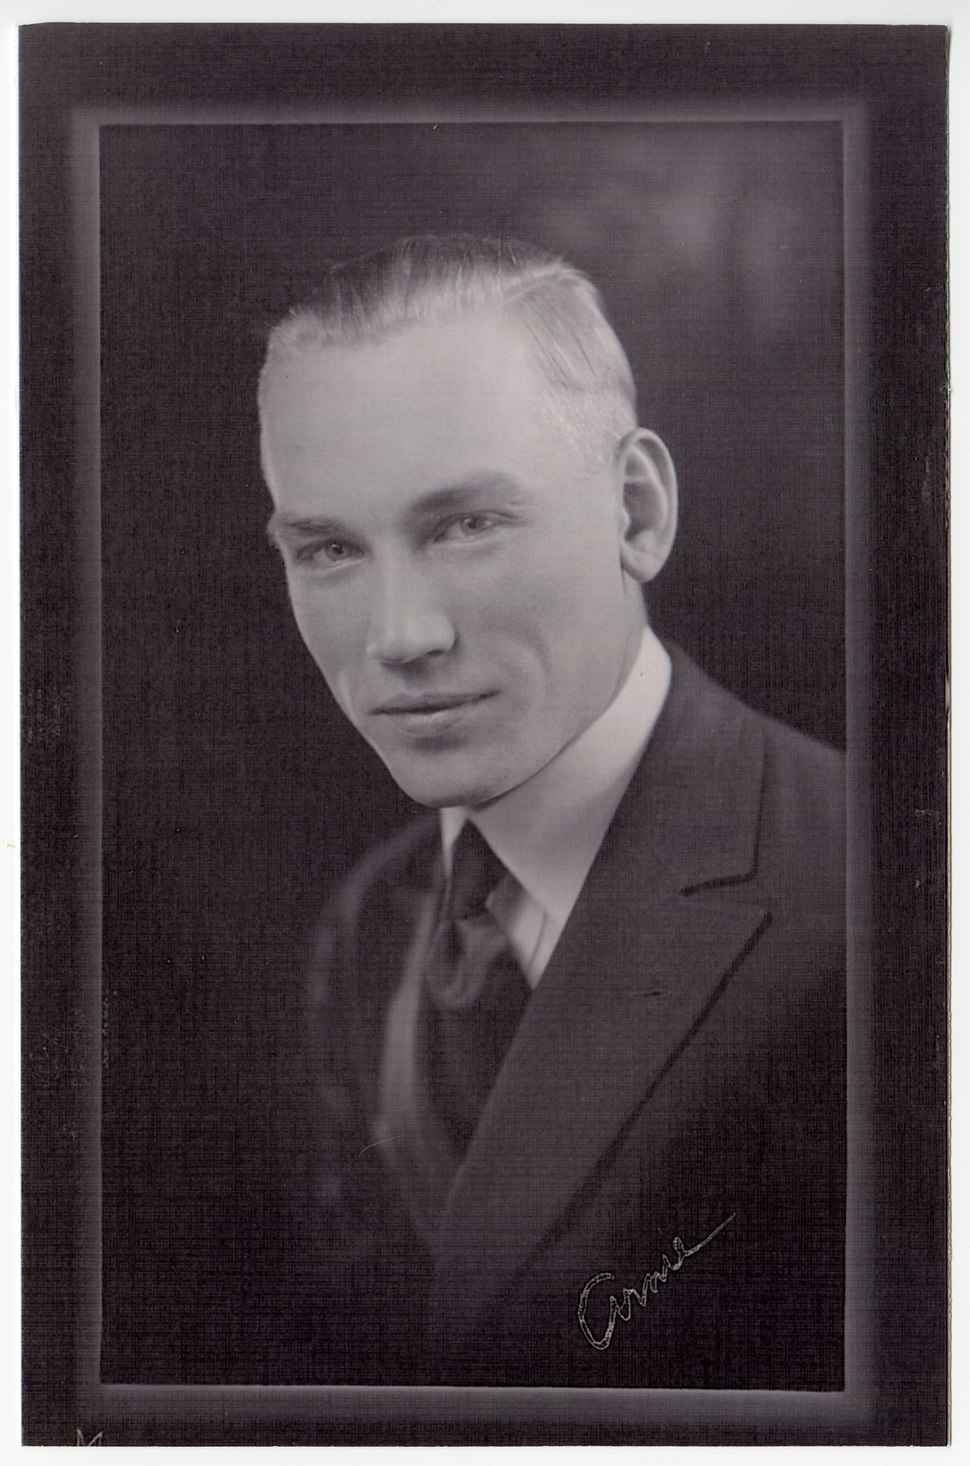 Arnold Beckman early portrait 2.65